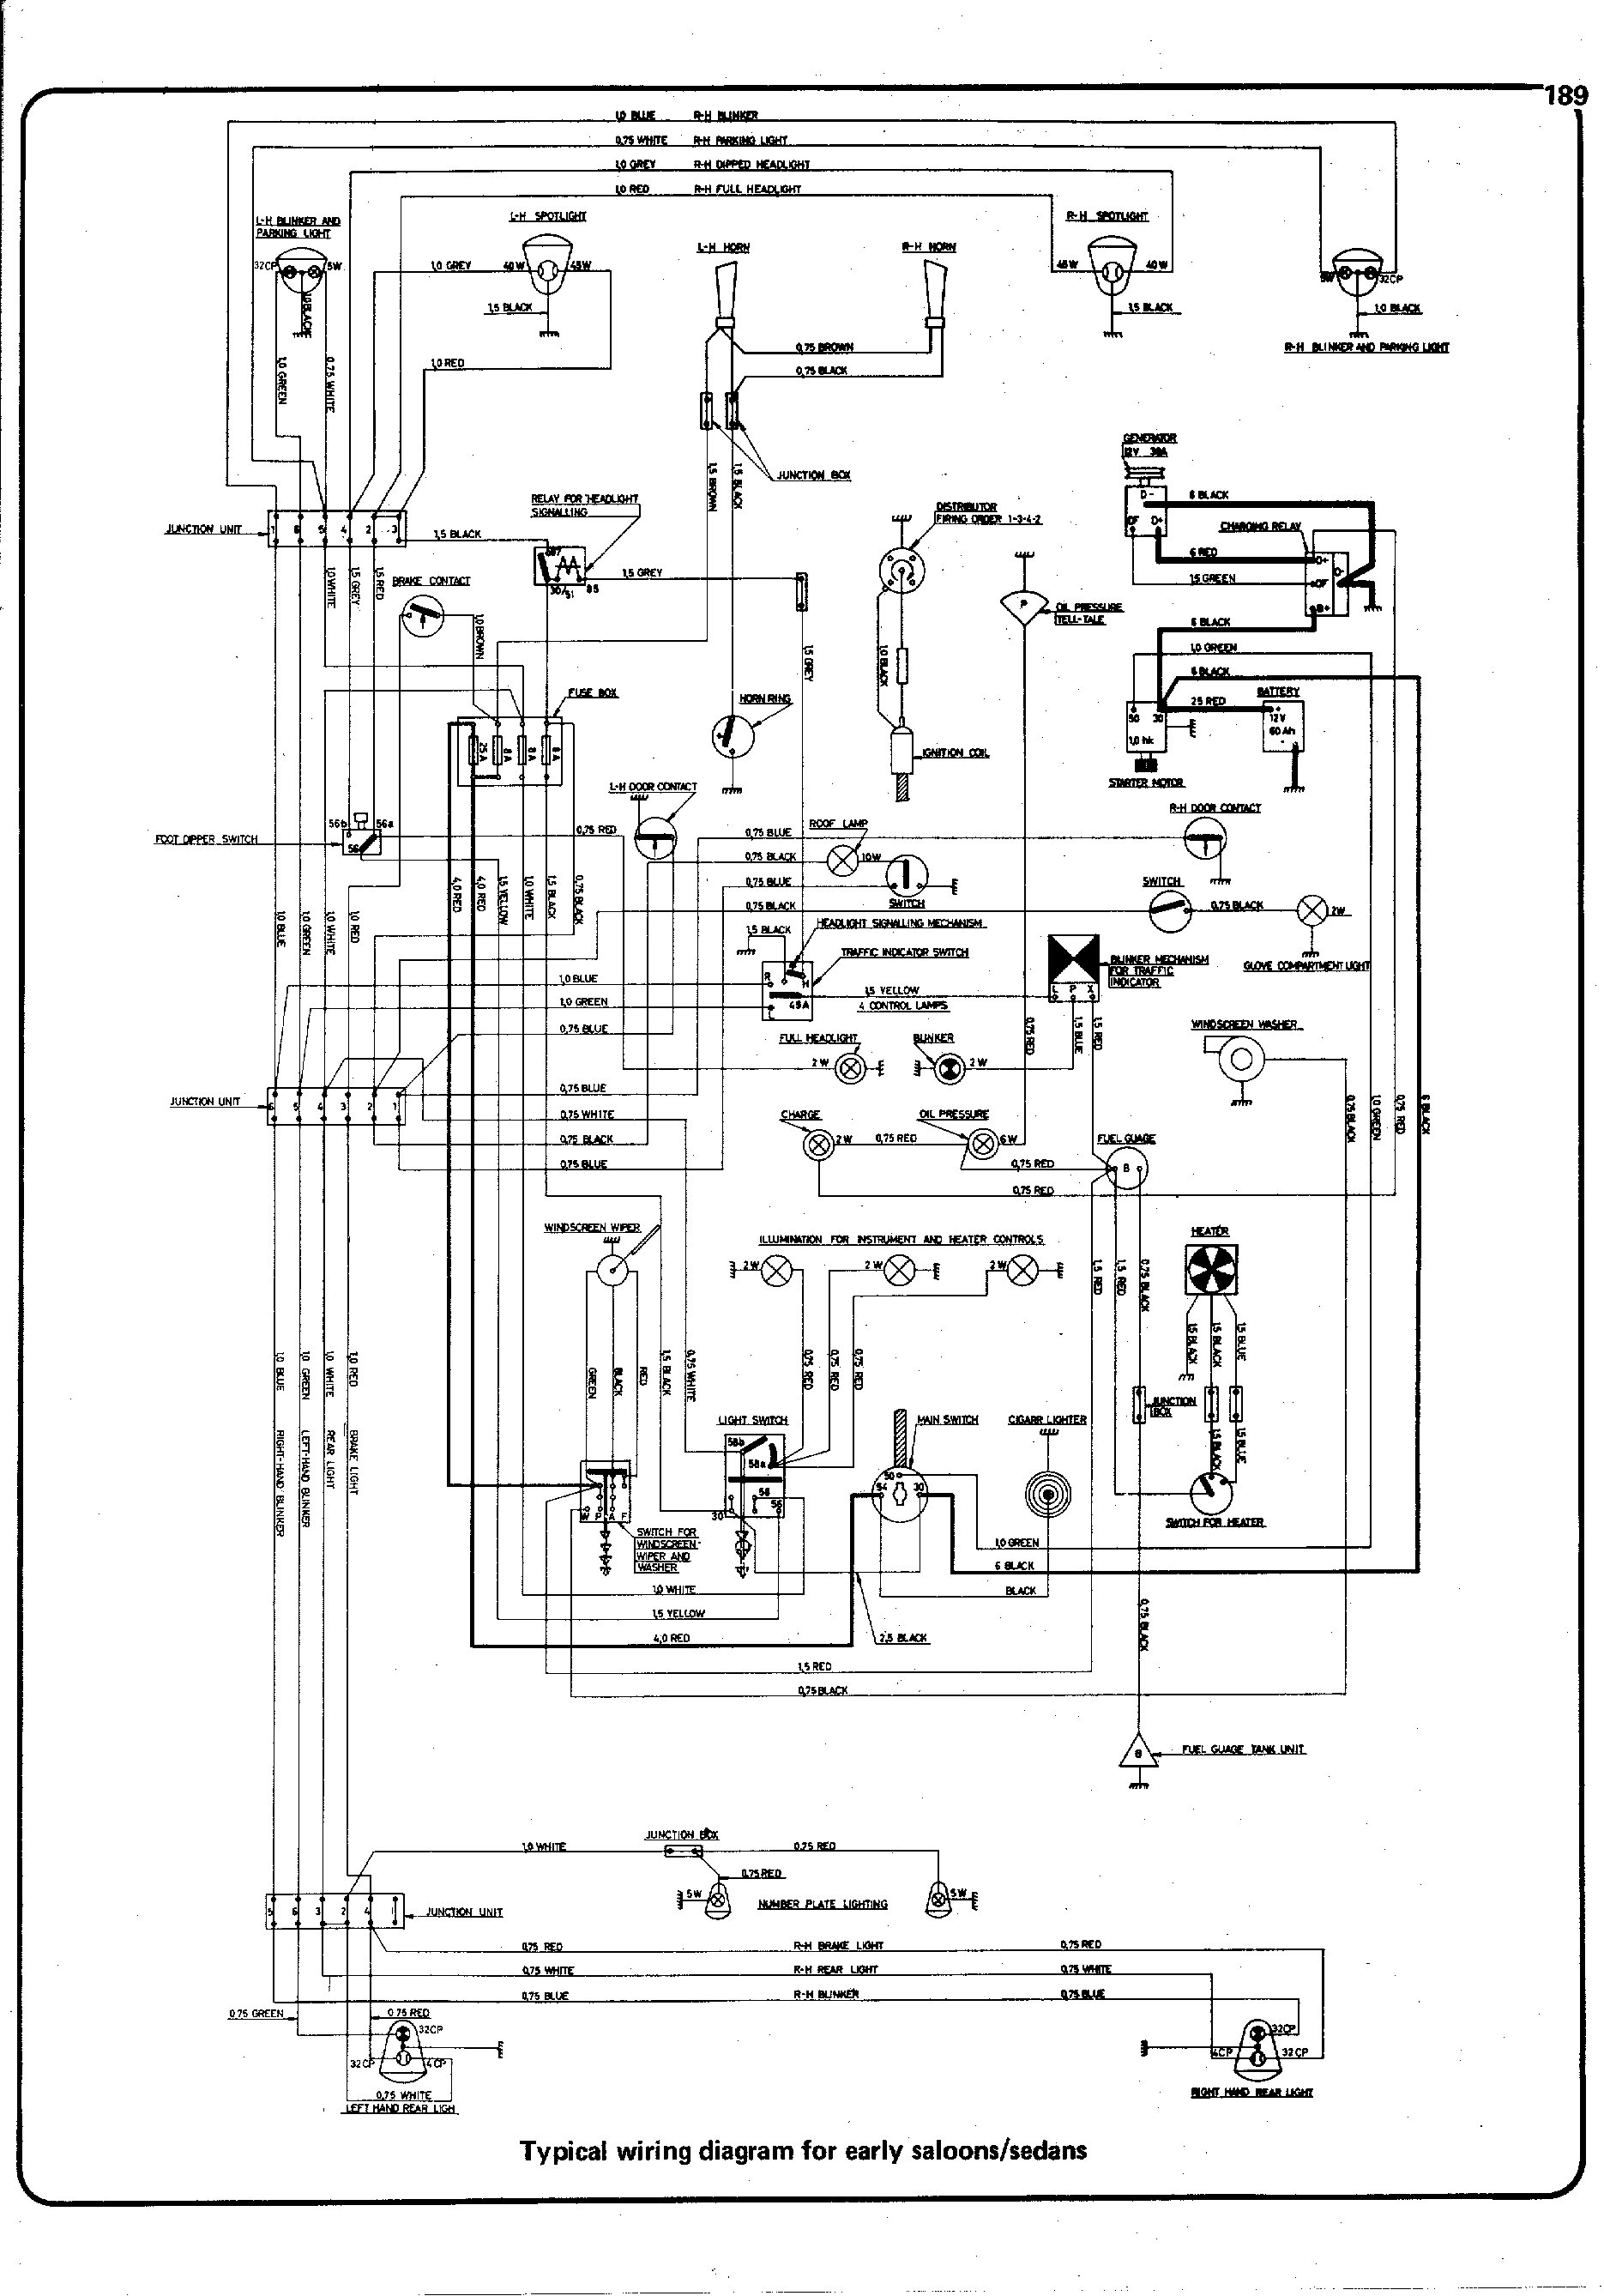 Watch together with 1999 Acura Cl Fuse Box Diagram also 2005 Chevy Suburban Aftermarket Wiring Diagram likewise 29ixd Bank Sensor O2 Sensor Located 2003 Ford Ex further 428215 Vsv Should I Need P0401 99 Ce. on 99 acura tl engine diagram